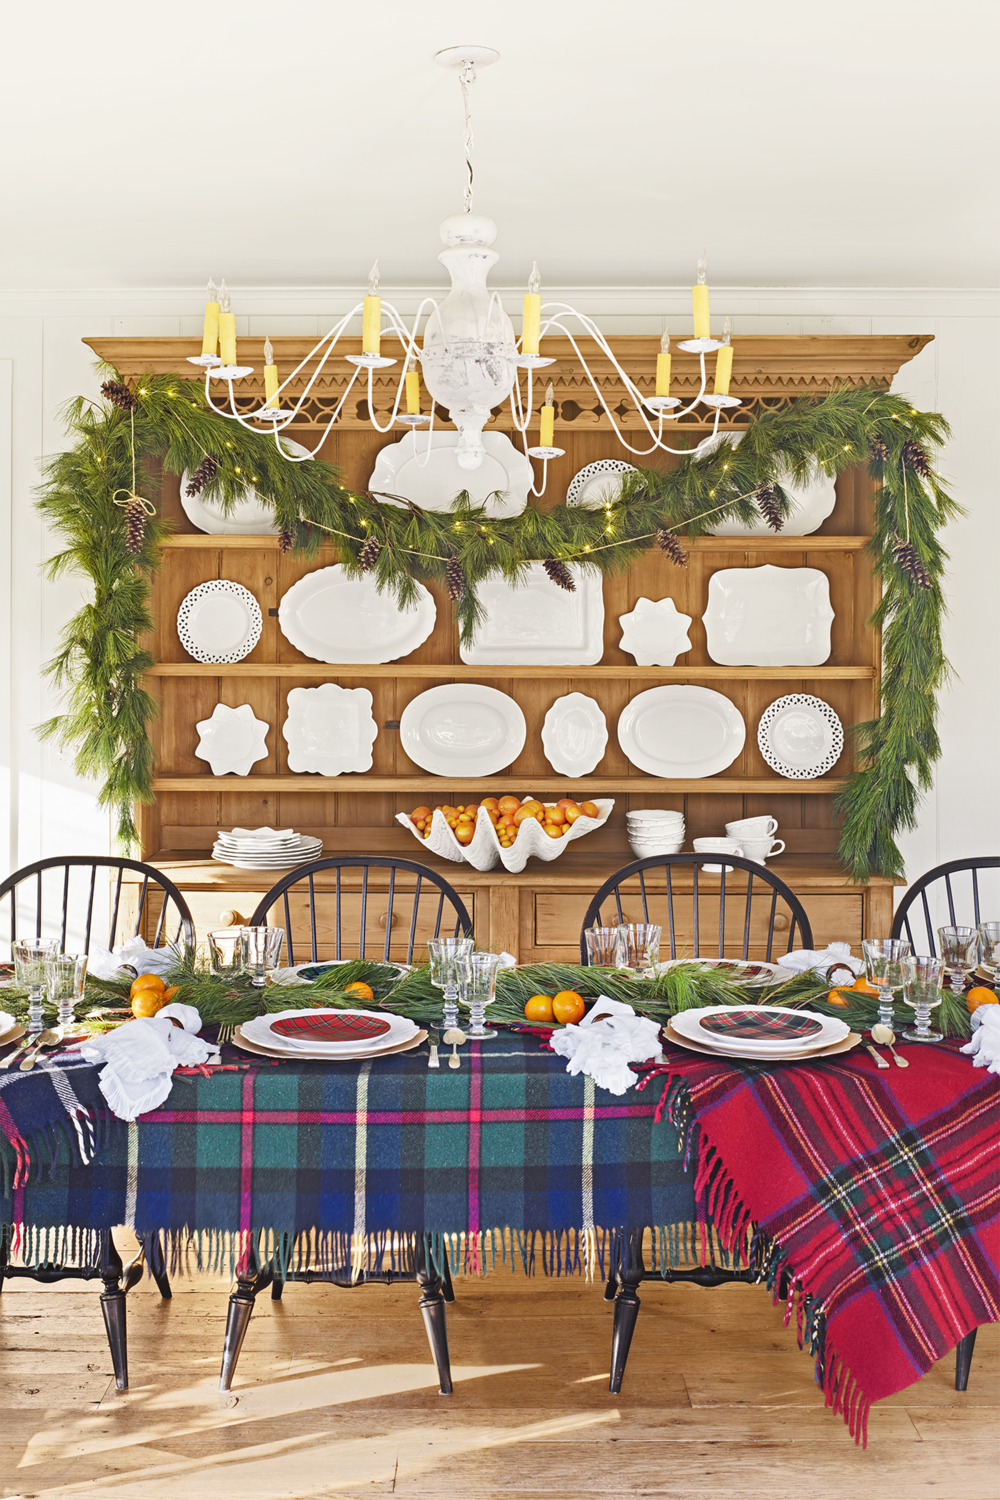 2) Use your scarves, blankets or kaftans as table cloths. - I am sure you have some plaid scarves laying around in your closet! Get them out and use them! In a brand new way! Put them on your table! Add some greenery, candles or fruit for a super awesome centerpiece to your celebration!